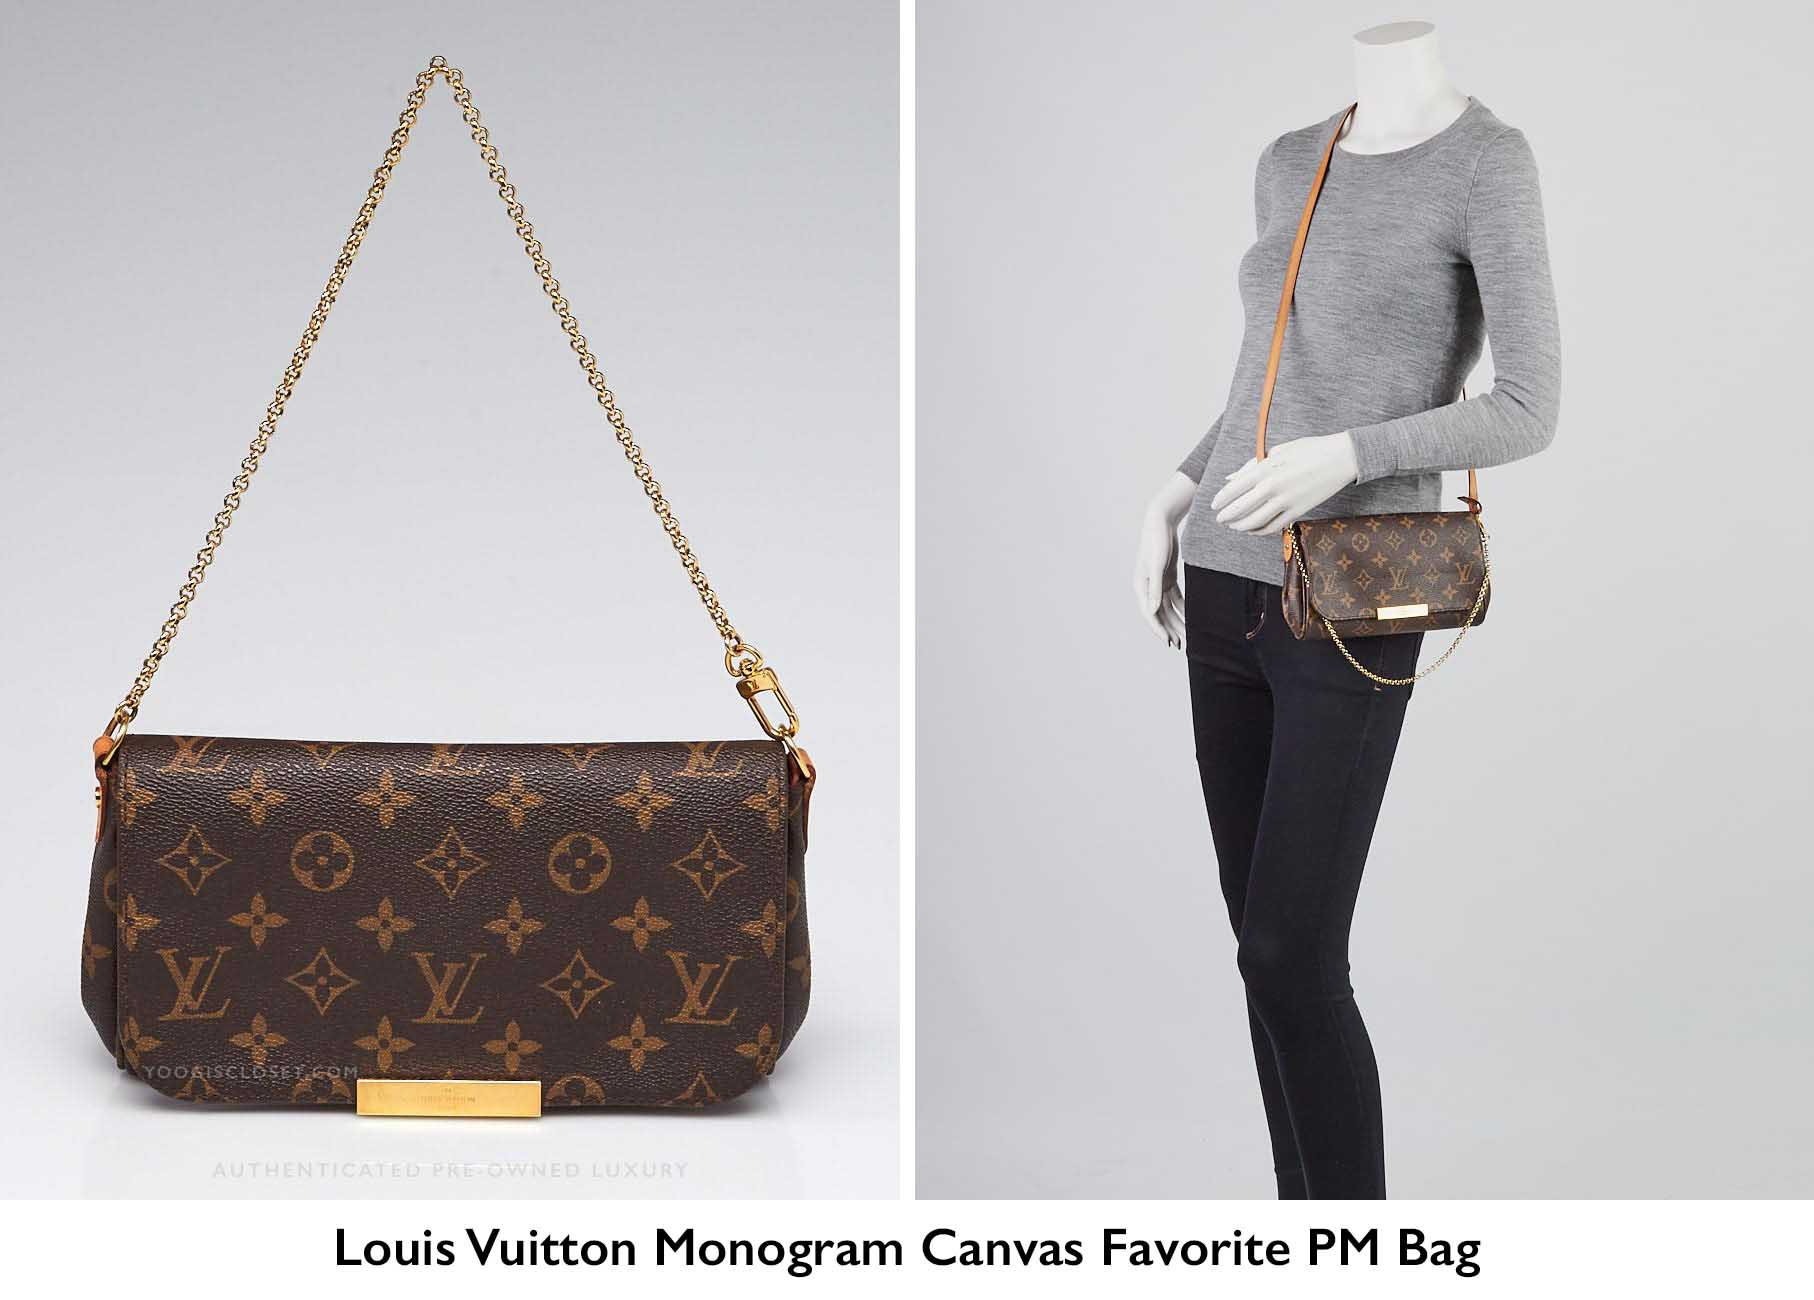 91d9976c3f25 Authentic Louis Vuitton Monogram Canvas Favorite PM Crossbody Bag |  Guaranteed Authentic at YoogisCloset.com